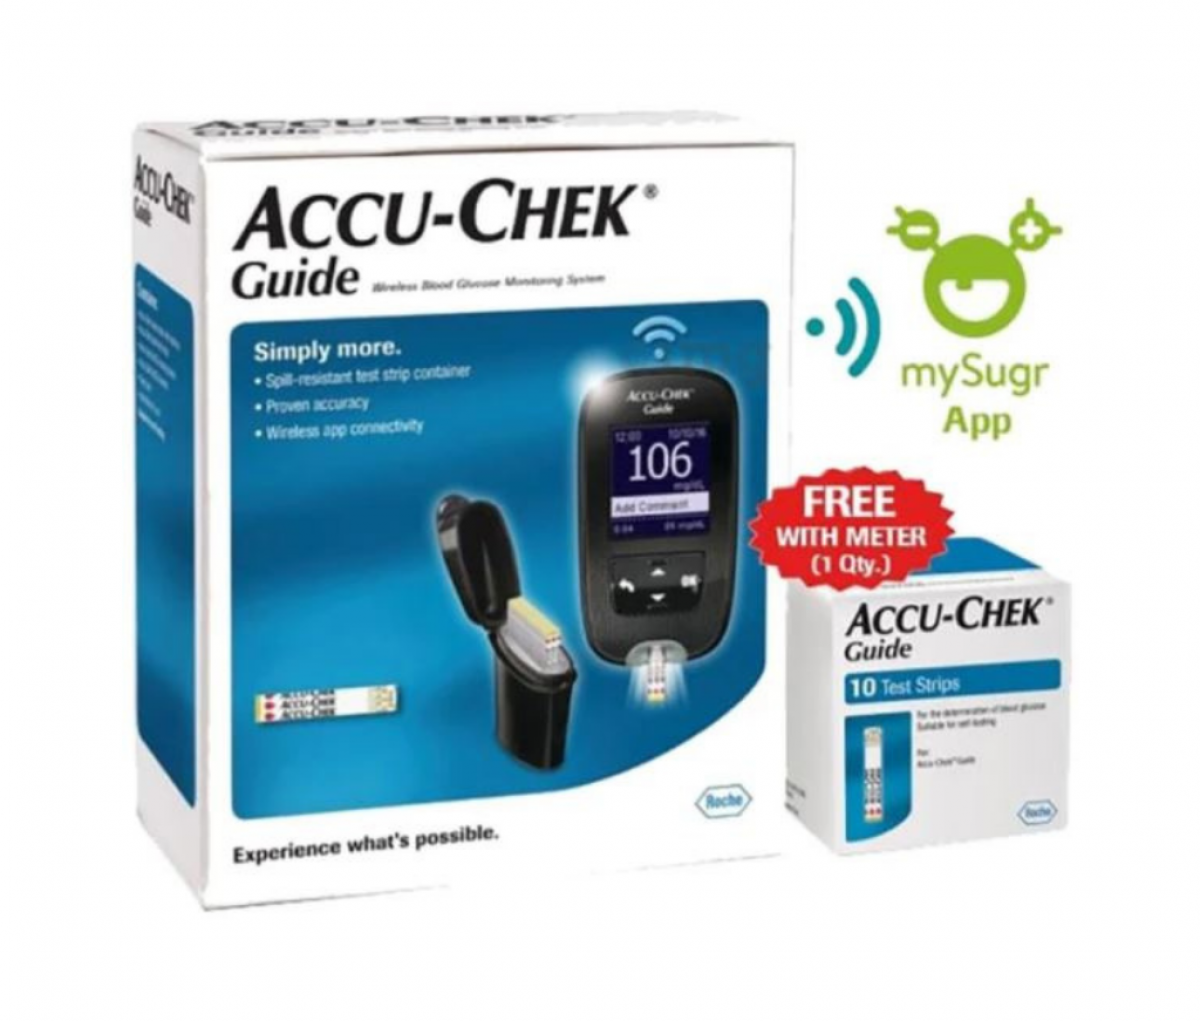 Accu-Chek Guide Wireless Blood Glucose Monitoring System with 10 Test Strips Free